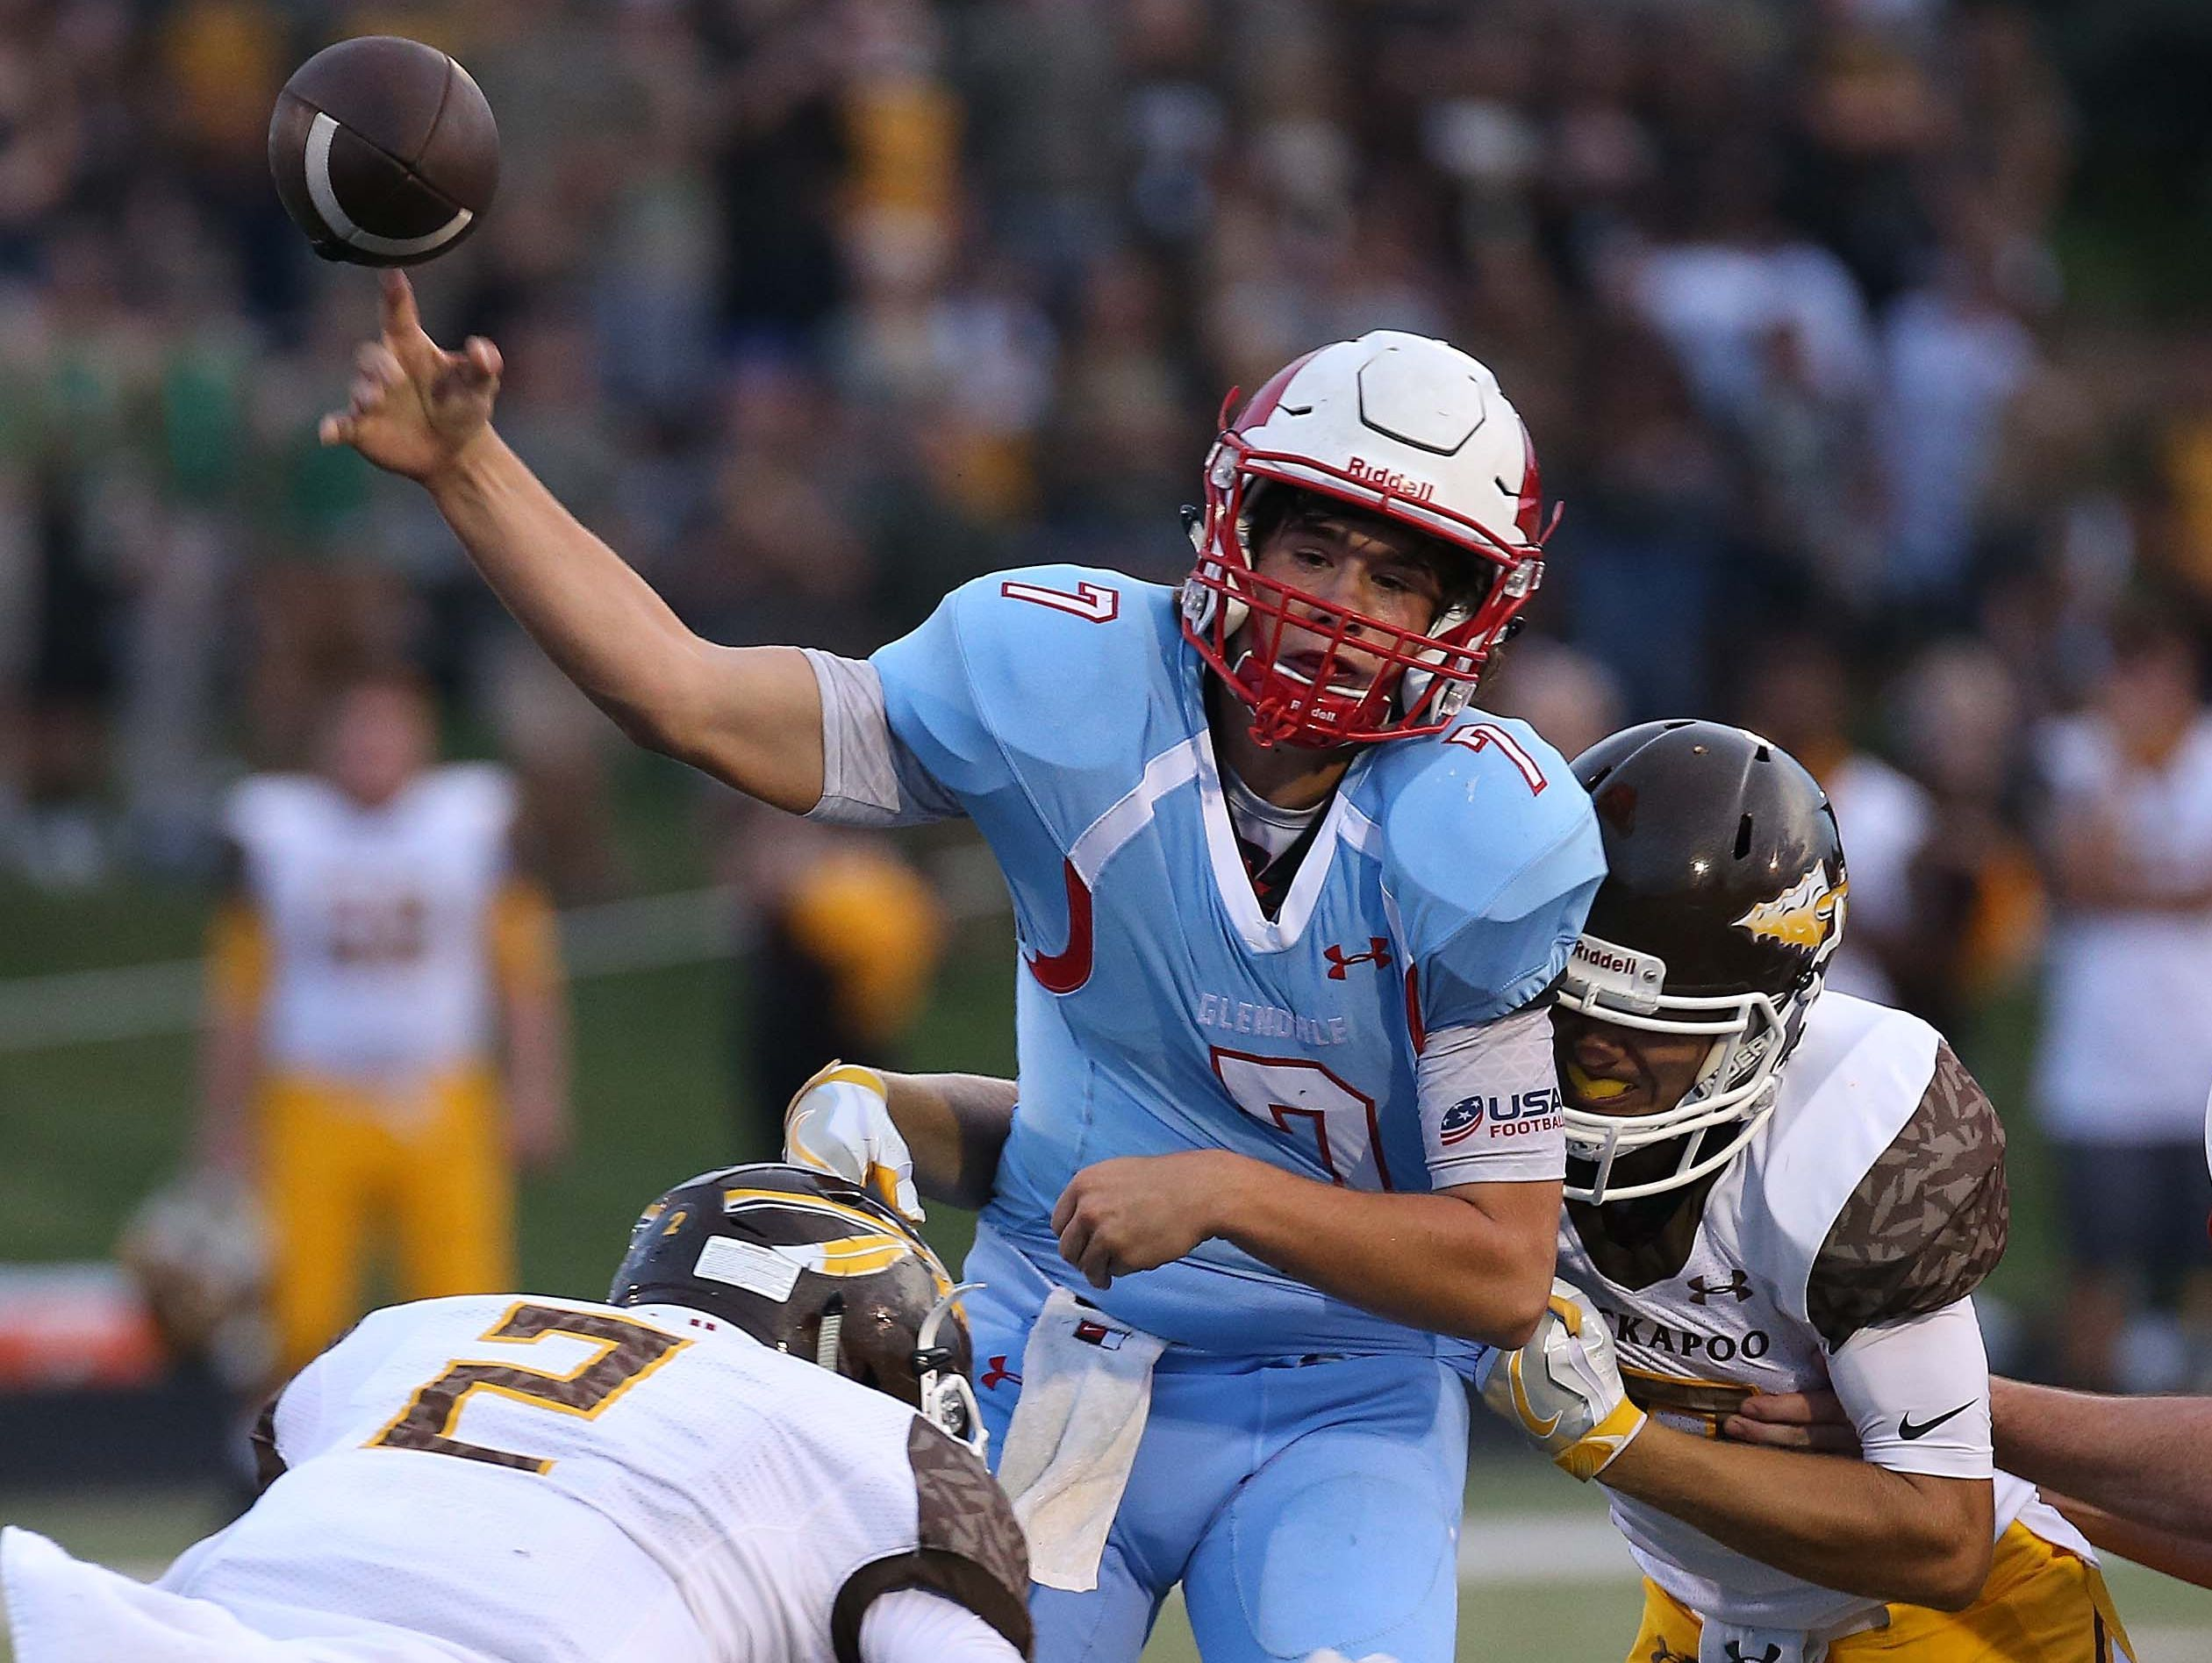 Glendale's Alex Huston throw a last second pass against visiting Kickapoo in Springfield on September 15, 2016.